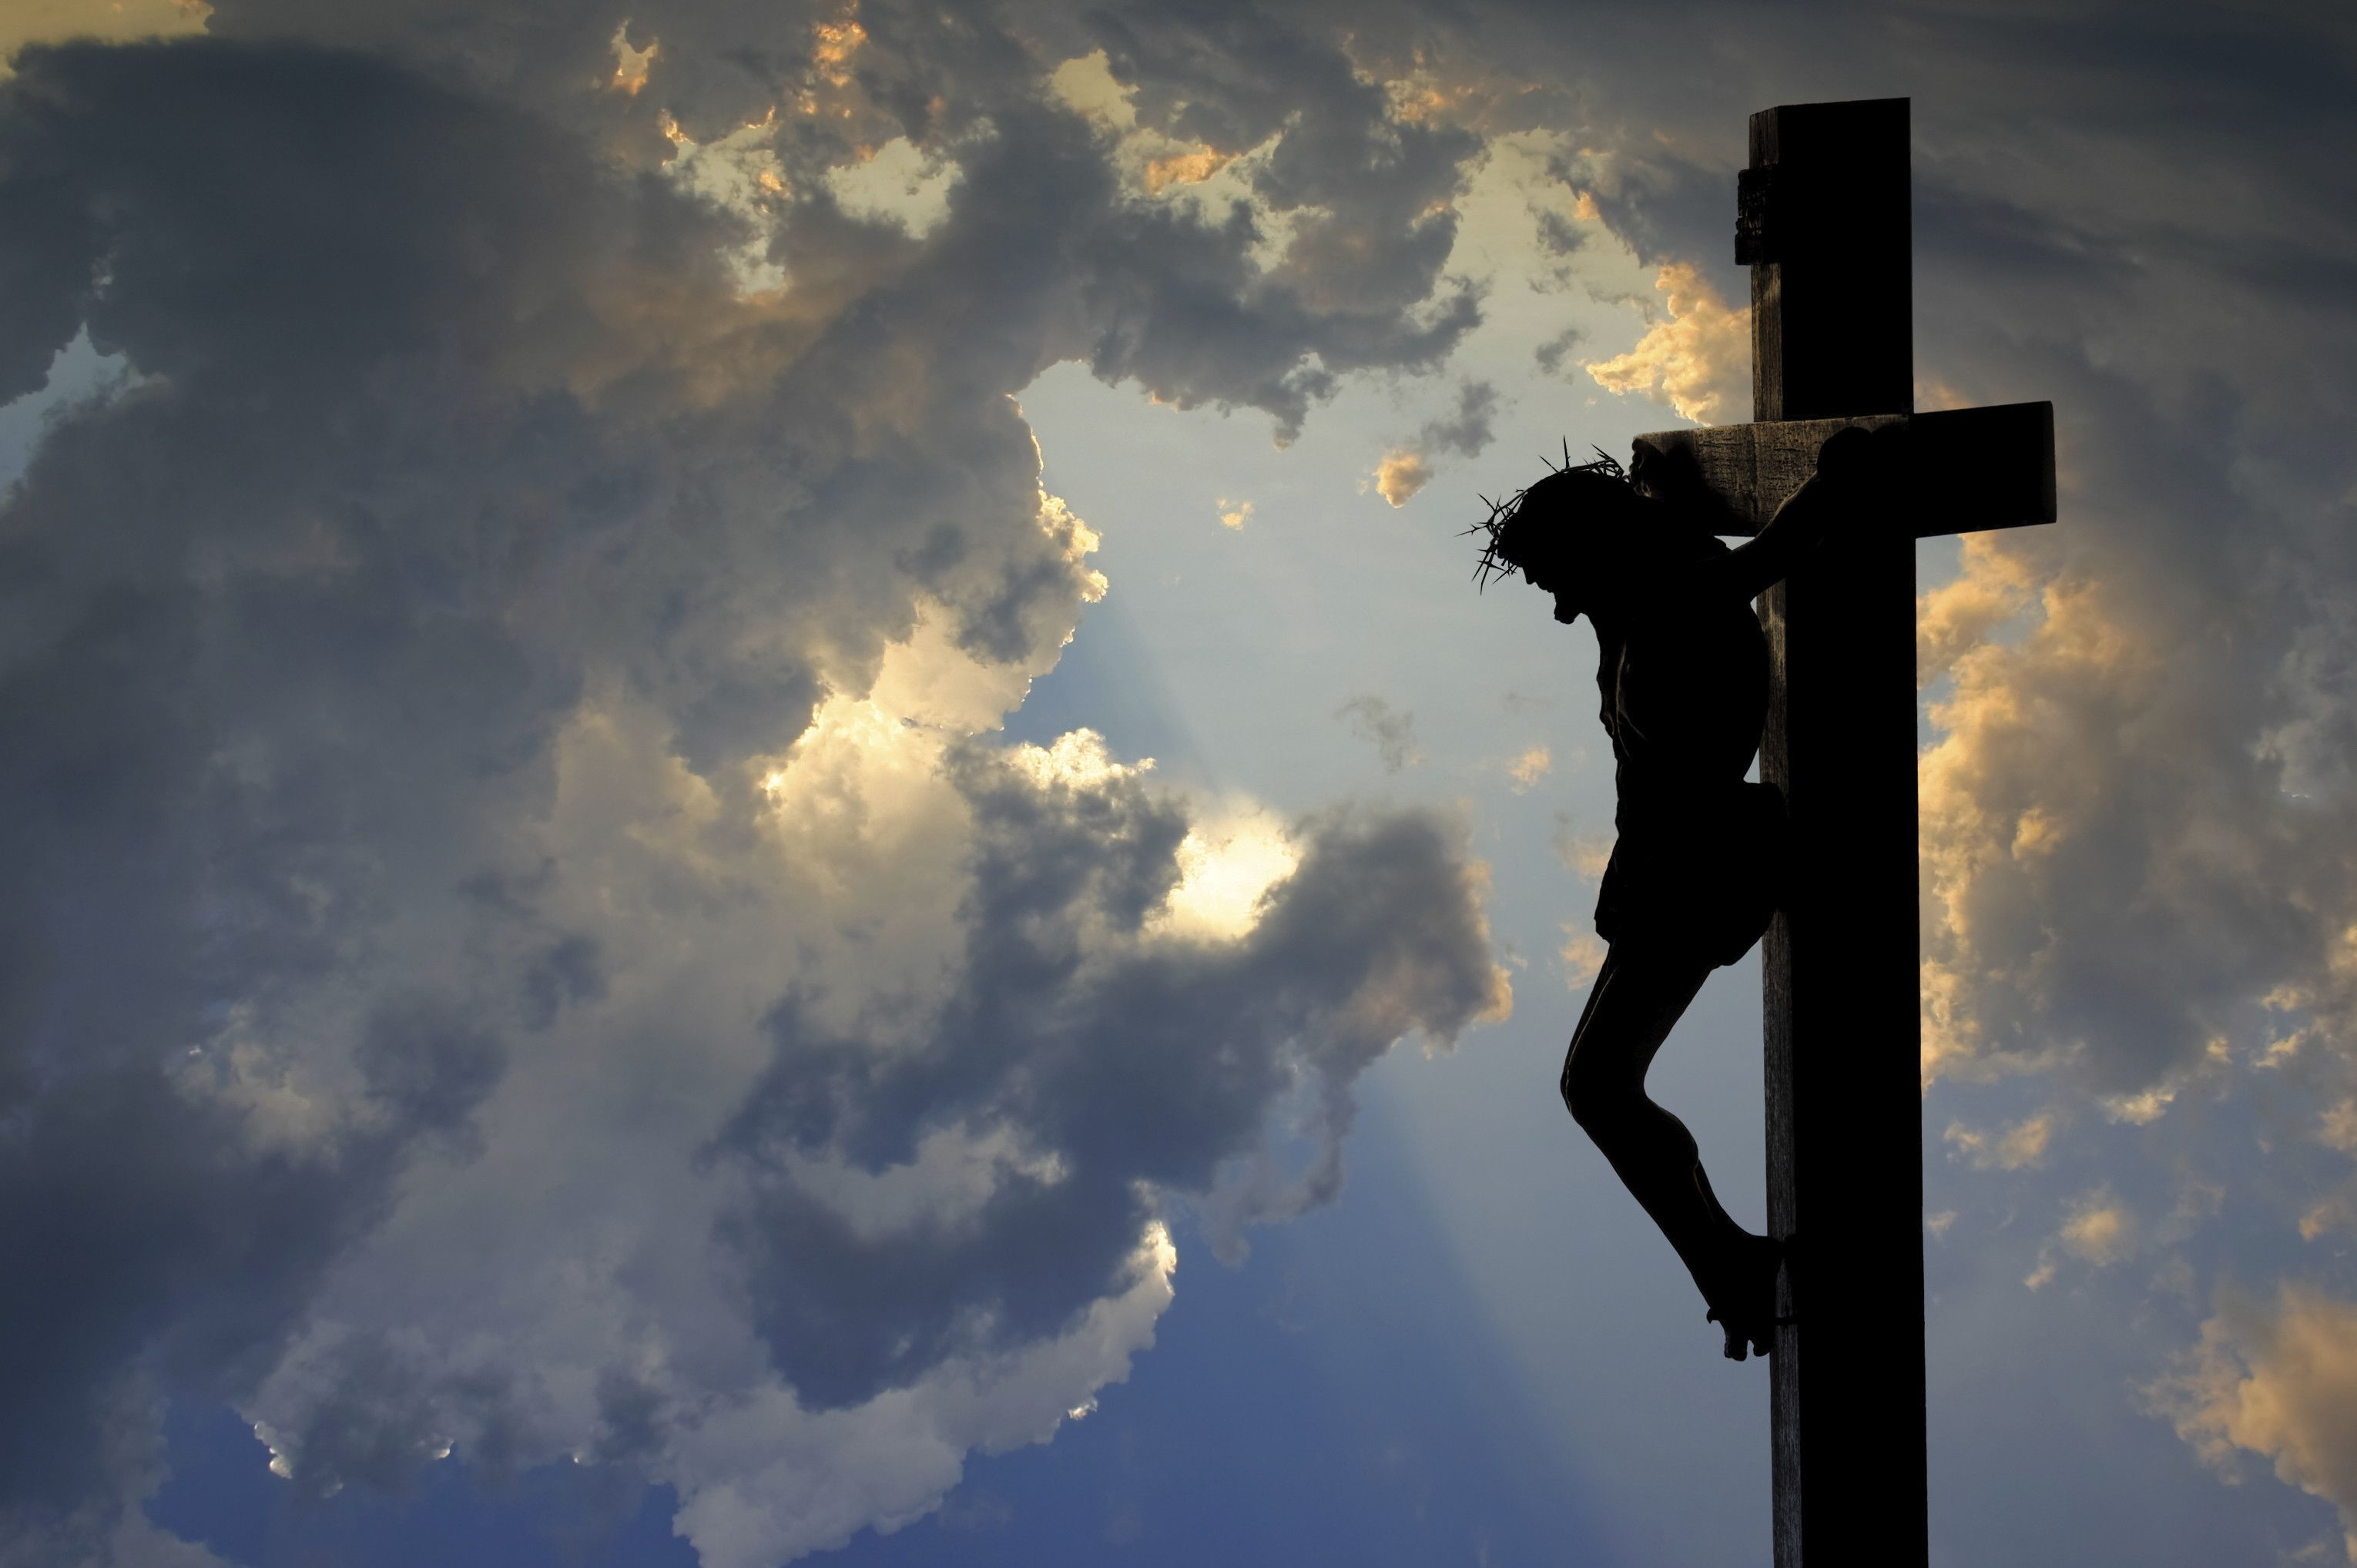 Crucifixion Wallpaper 54 Images Jesus Background Pictures Of Jesus Christ Crucifixion Of Jesus Hd wallpaper jesus on cross passion